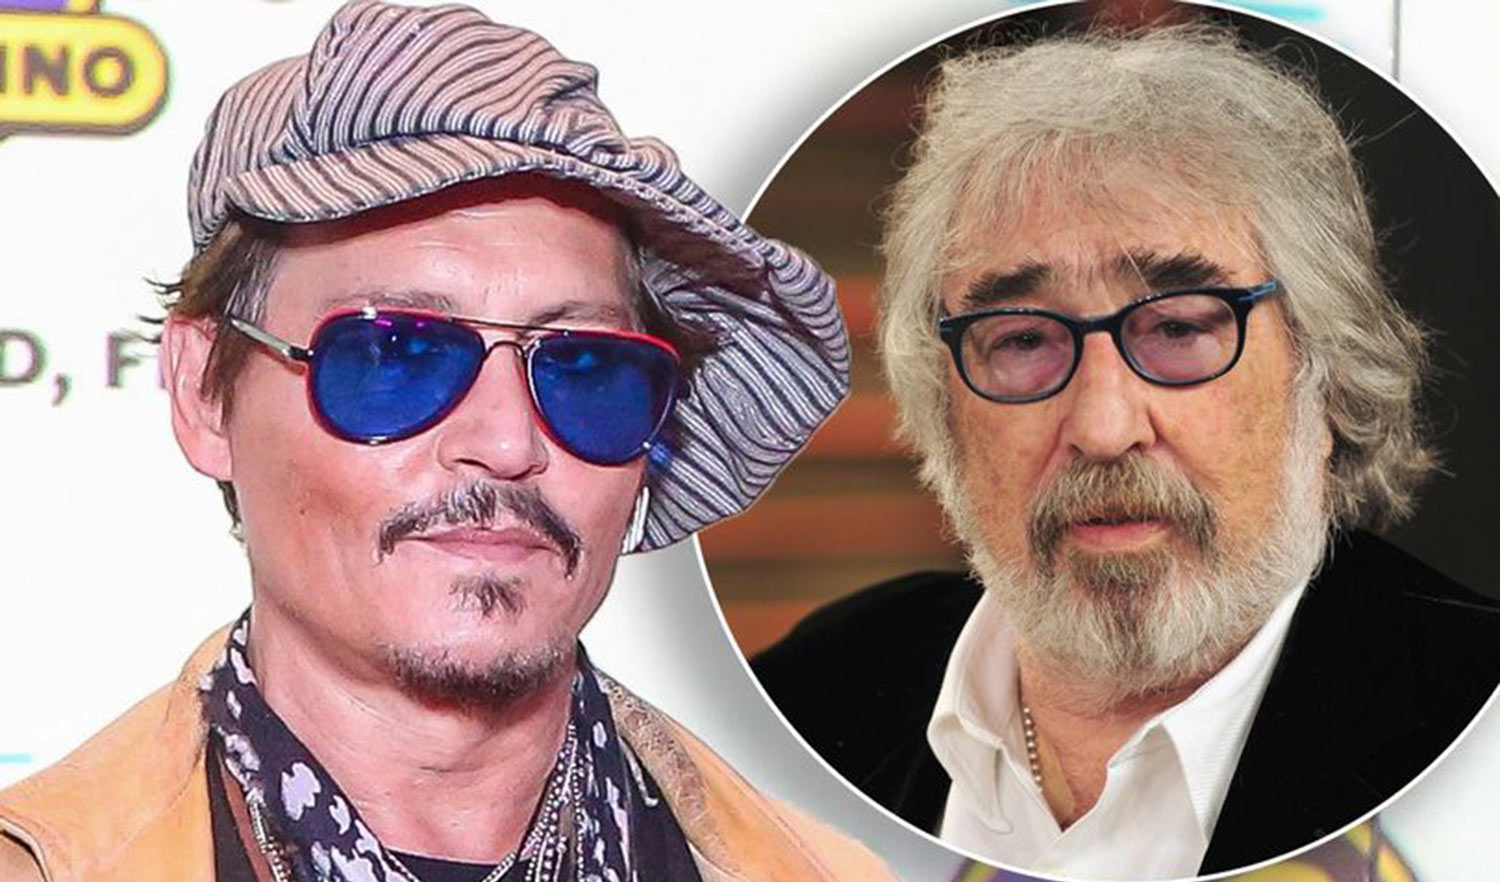 Johnny Depp accused his ex-lawyer Jake Bloom of wrongly collecting millions of dollars